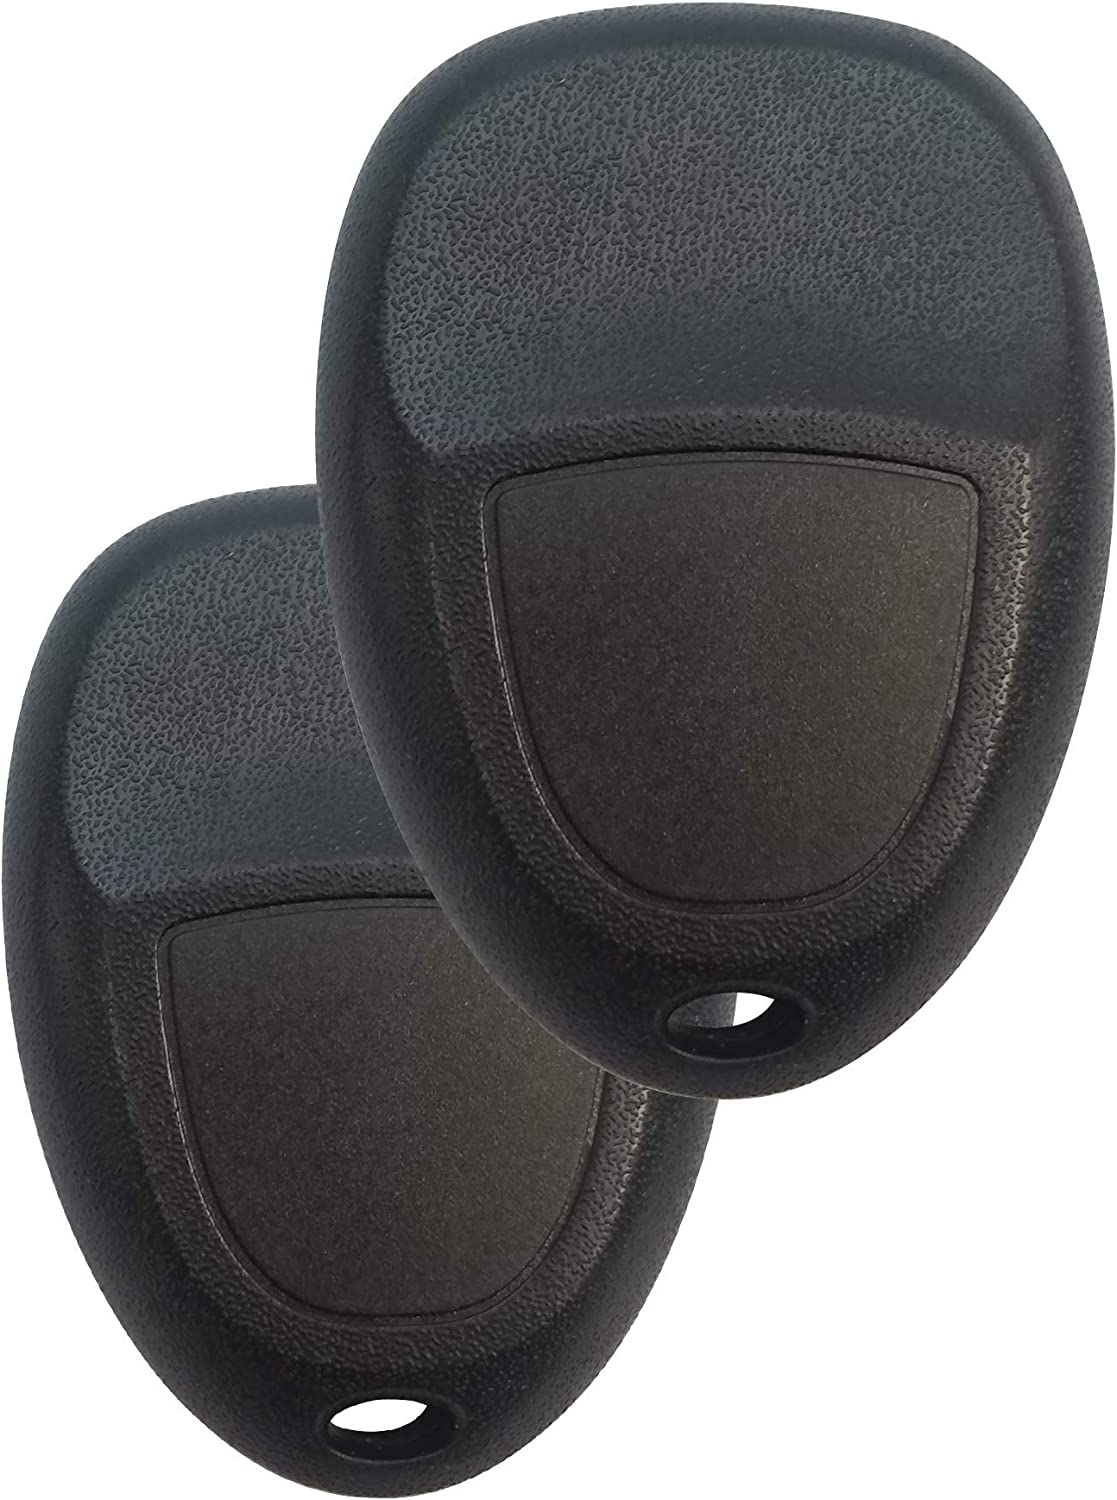 CHEVROLET CADILLAC /& GMC 6 Button Keyless Entry Remote w//Hatch and Hatch Glass Buttons /& New DURACELL Battery OUC60270 OUC60221 REMOTE STORE BUNDLE 6 BTN, 1 PACK